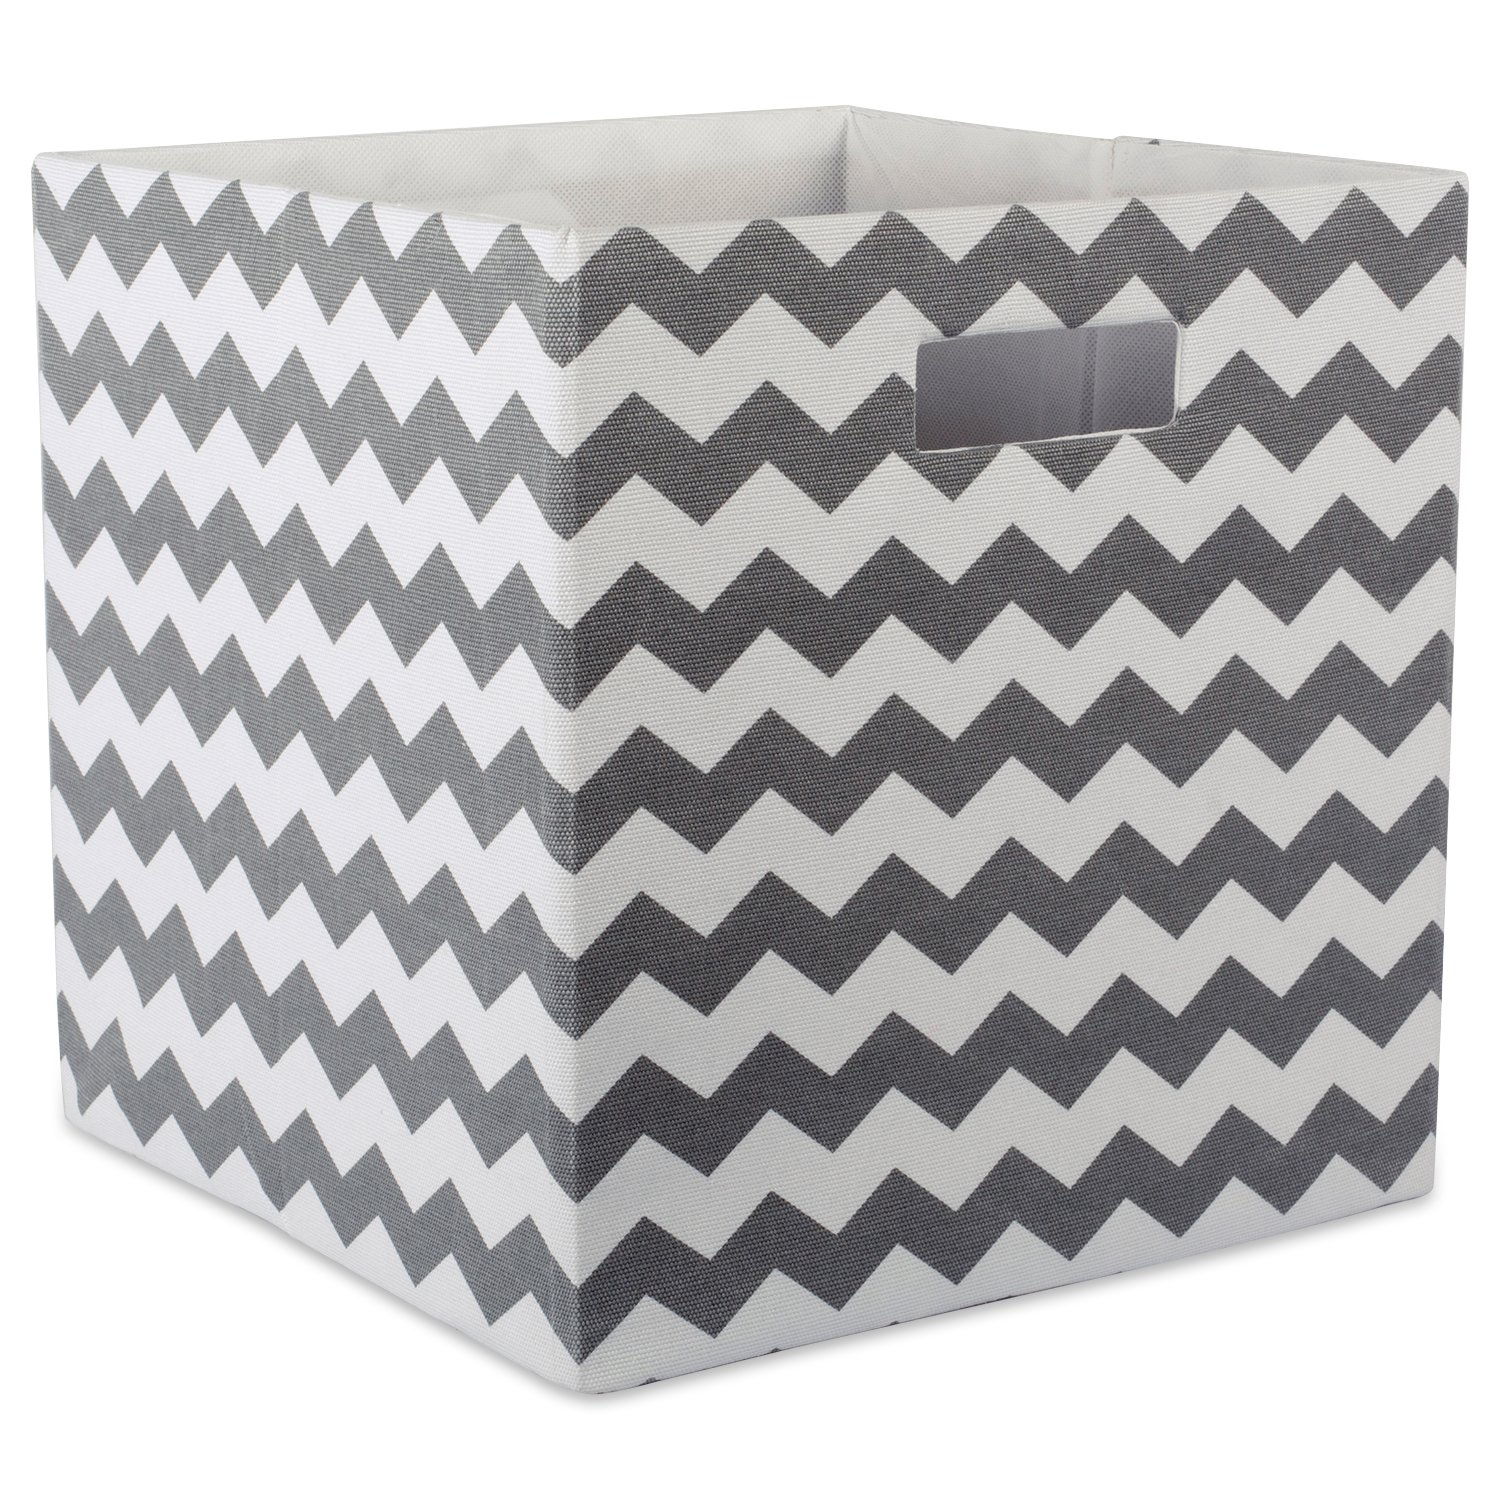 "DII Hard Sided Collapsible Fabric Storage Container for Nursery, Offices, & Home Organization, (13x13x13"") - Chevron Gray"